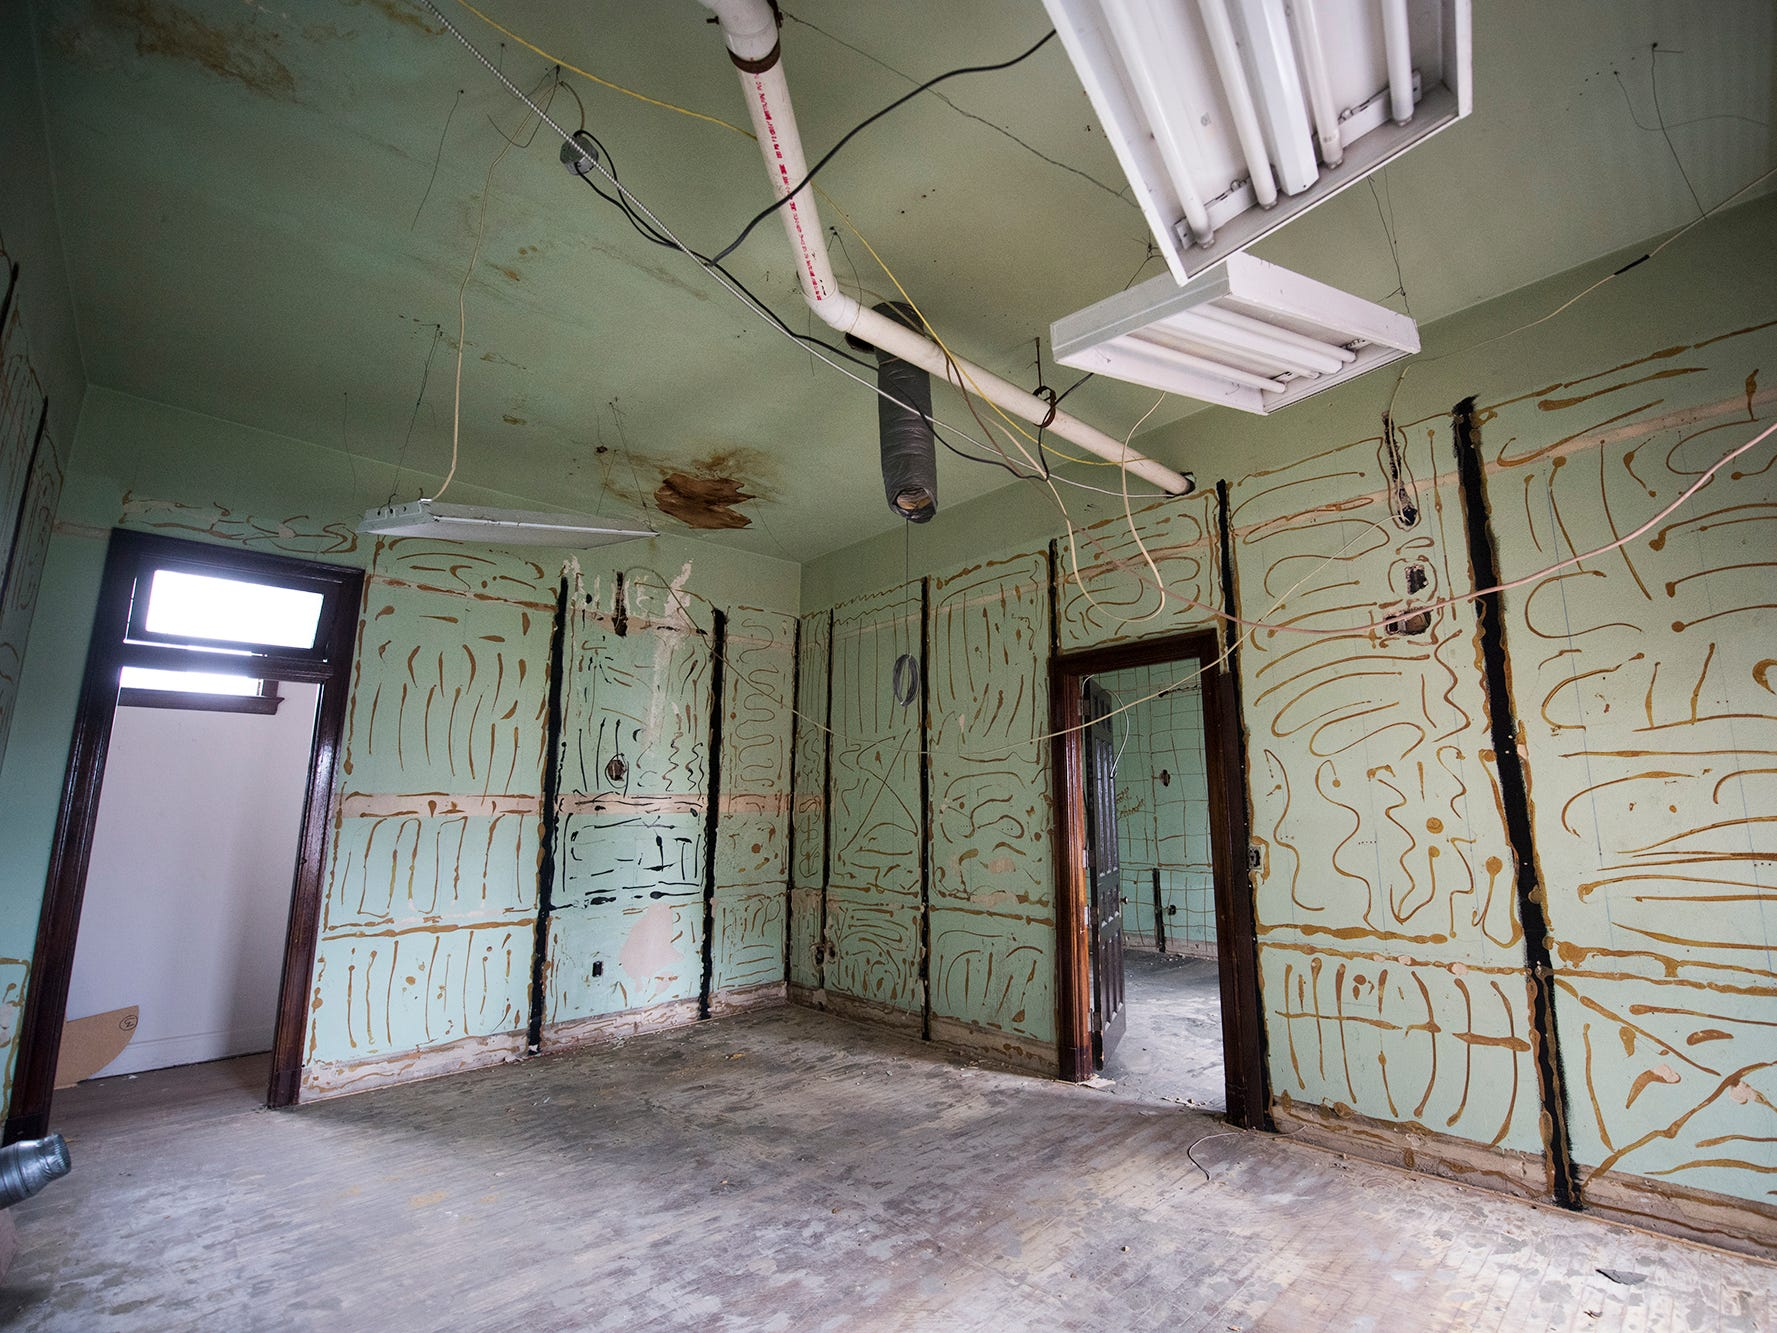 An upper floor of the Rupp-Schmidt Building at 2 West Market Street in York show evidence of panelling and a drop ceiling.